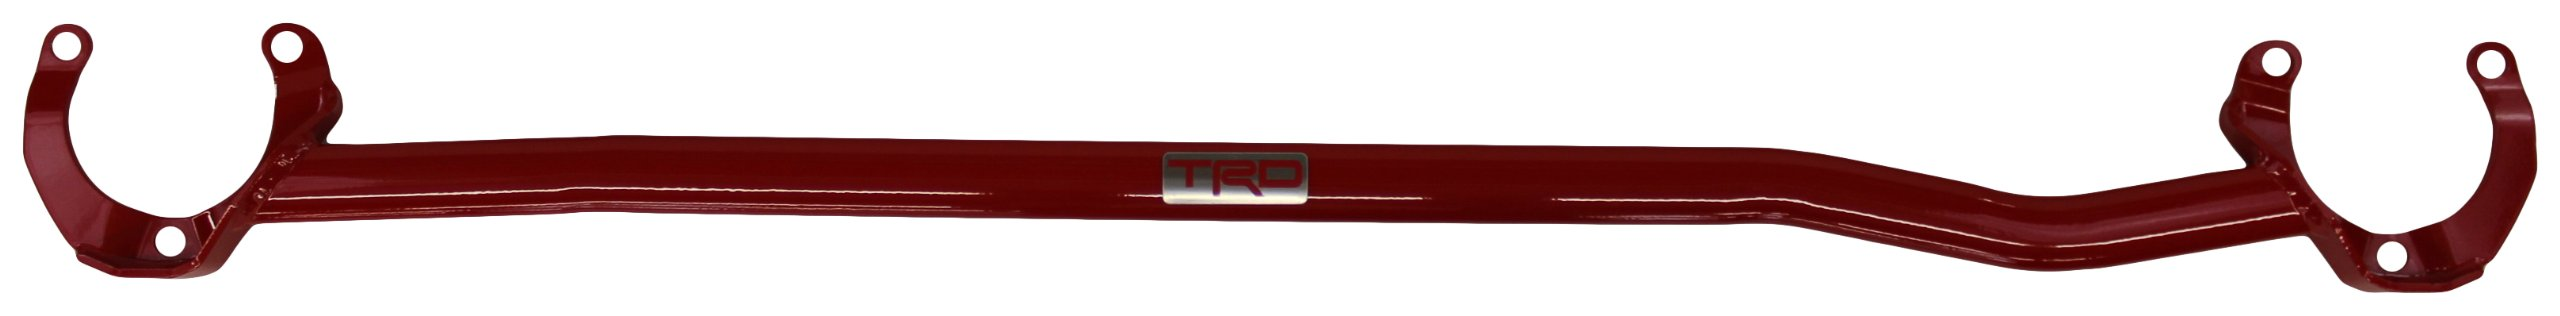 Genuine Toyota Parts PTR02-12080 TRD Chassis Brace by Toyota